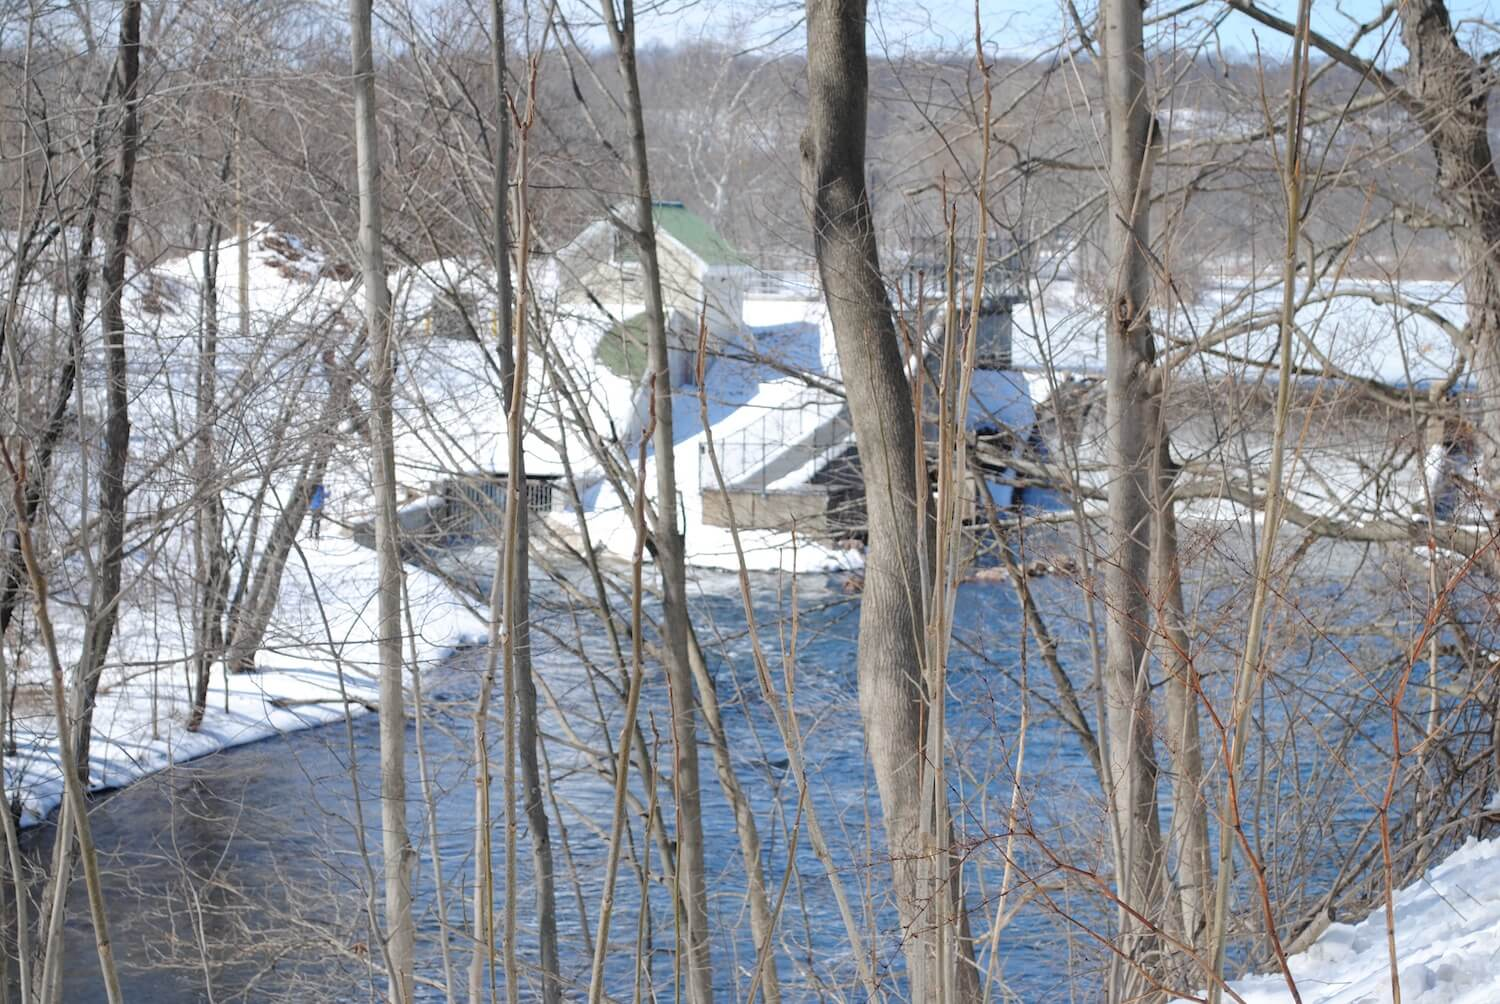 Winter view of Hanover Pond Hydro Installation